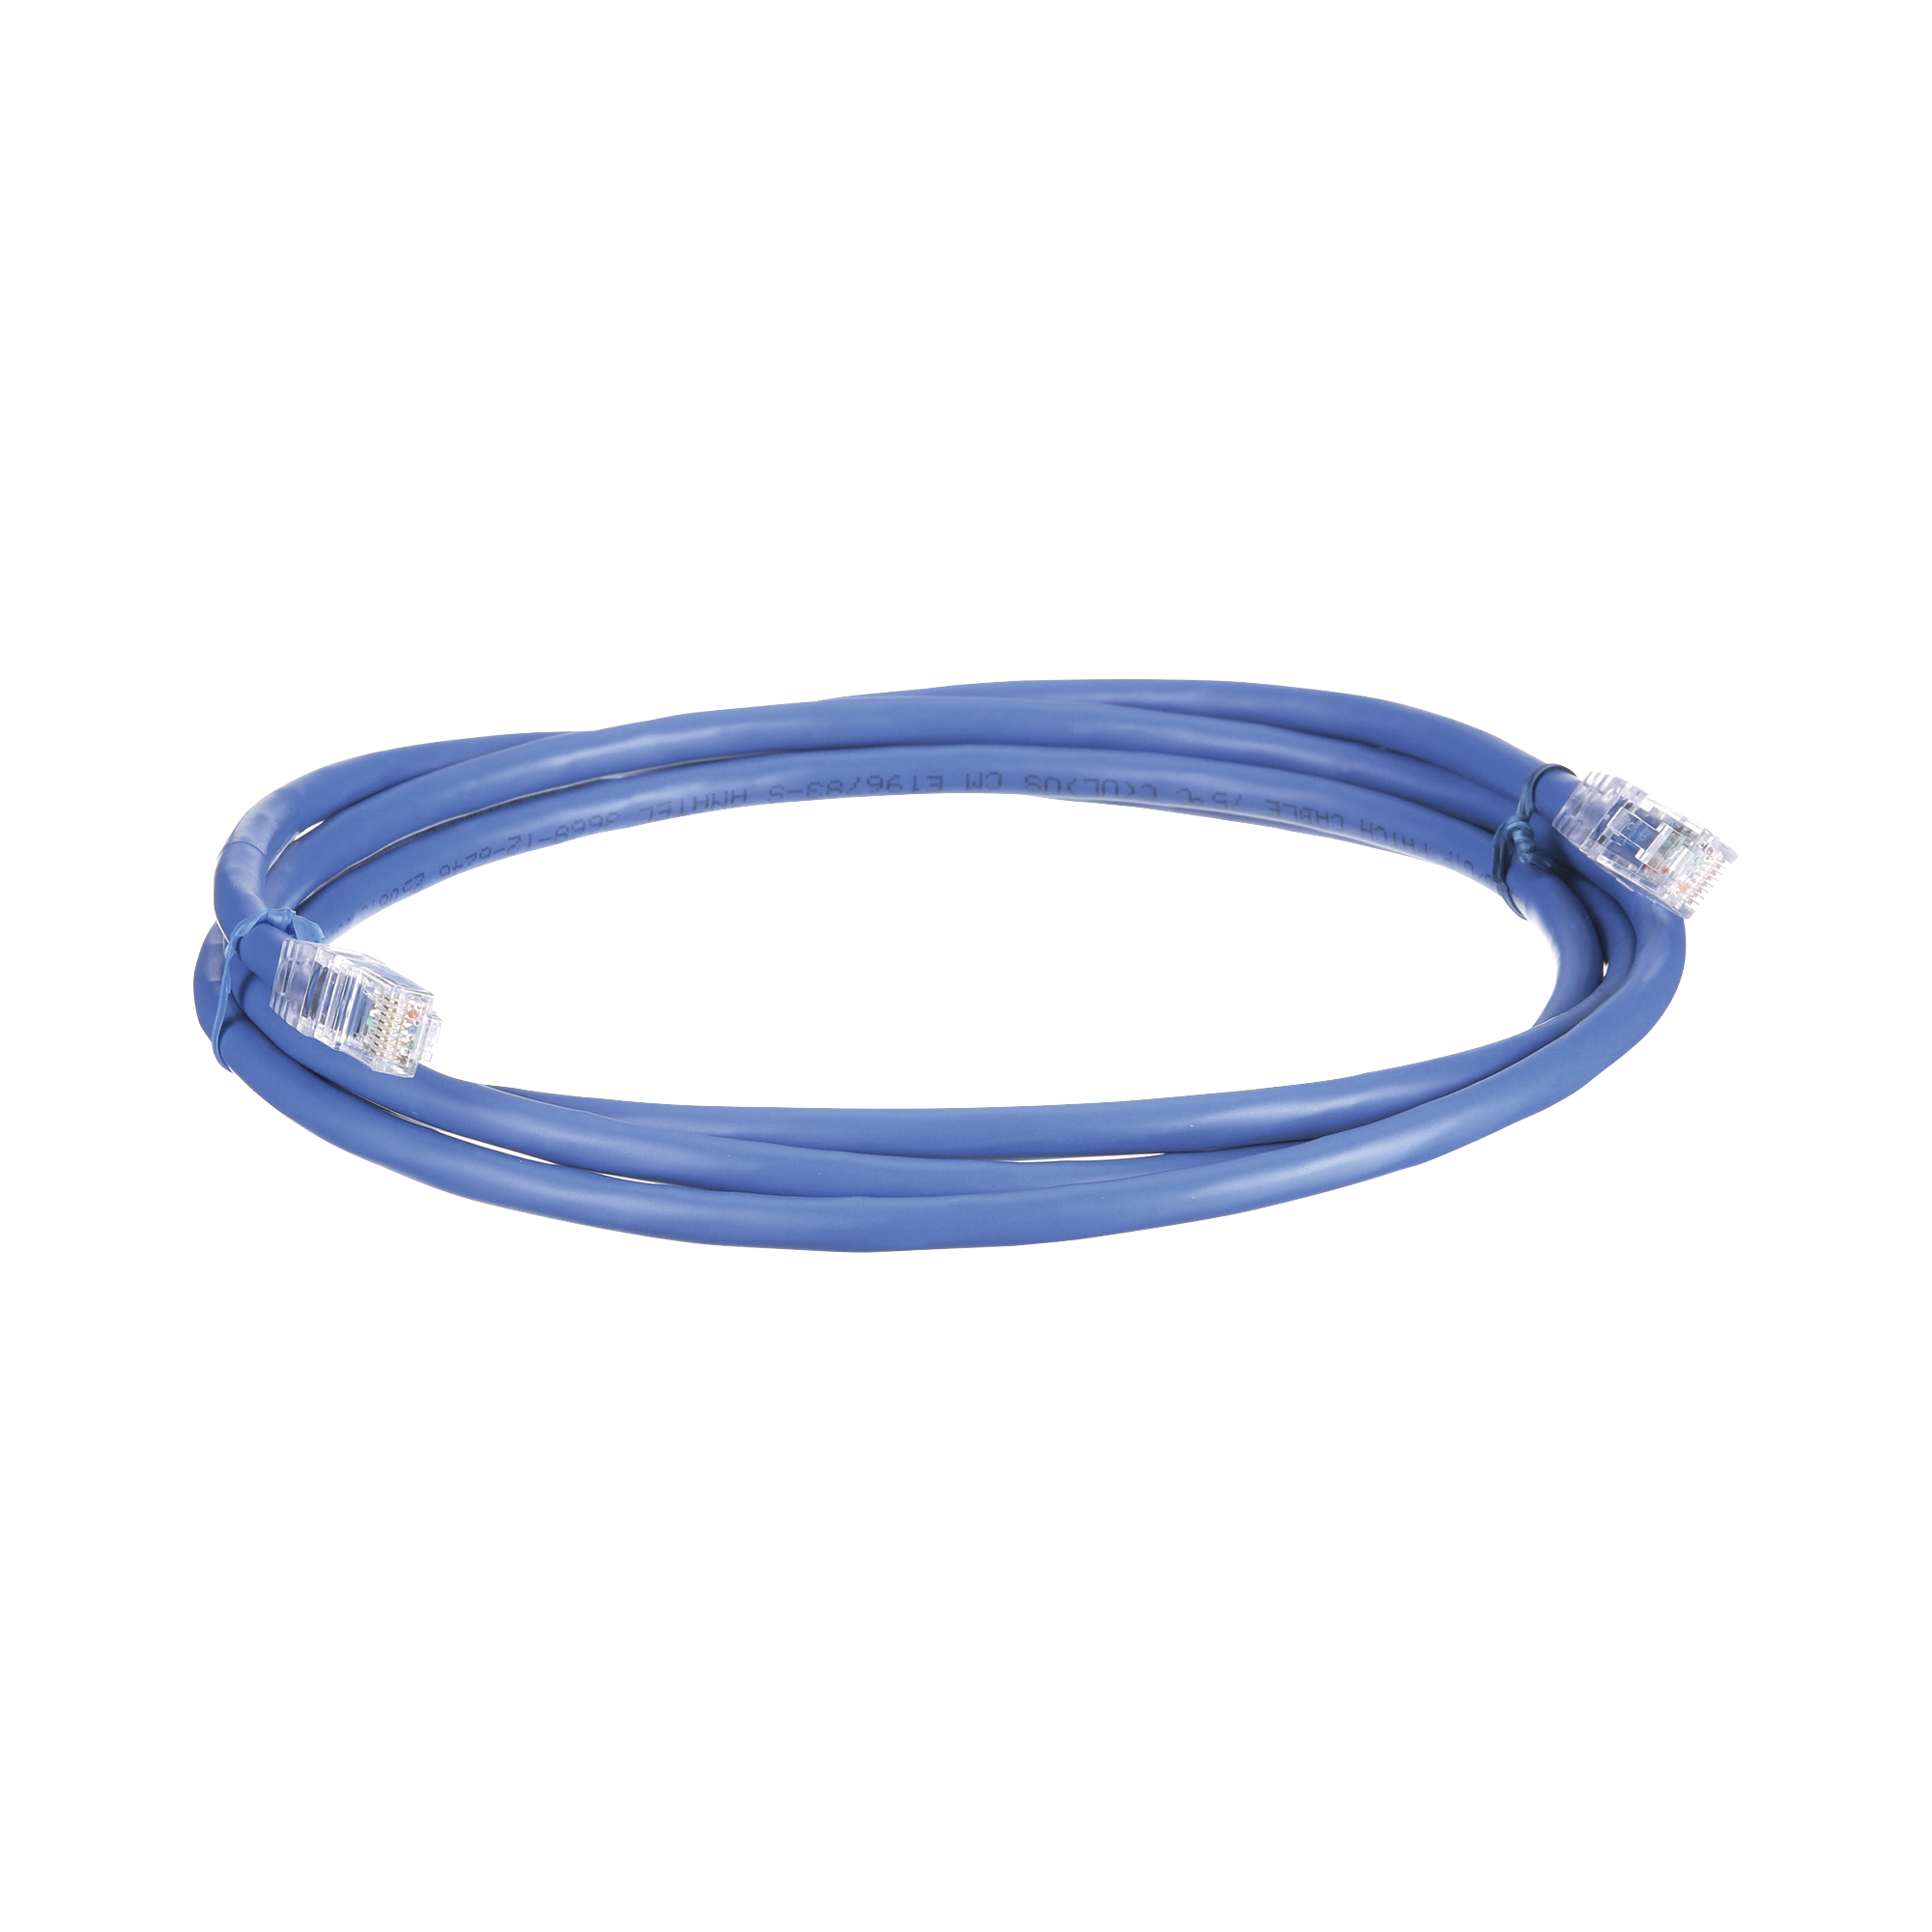 Cable de Parcheo UTP, Cat6A, 24 AWG, CM, Color Azul, 7ft